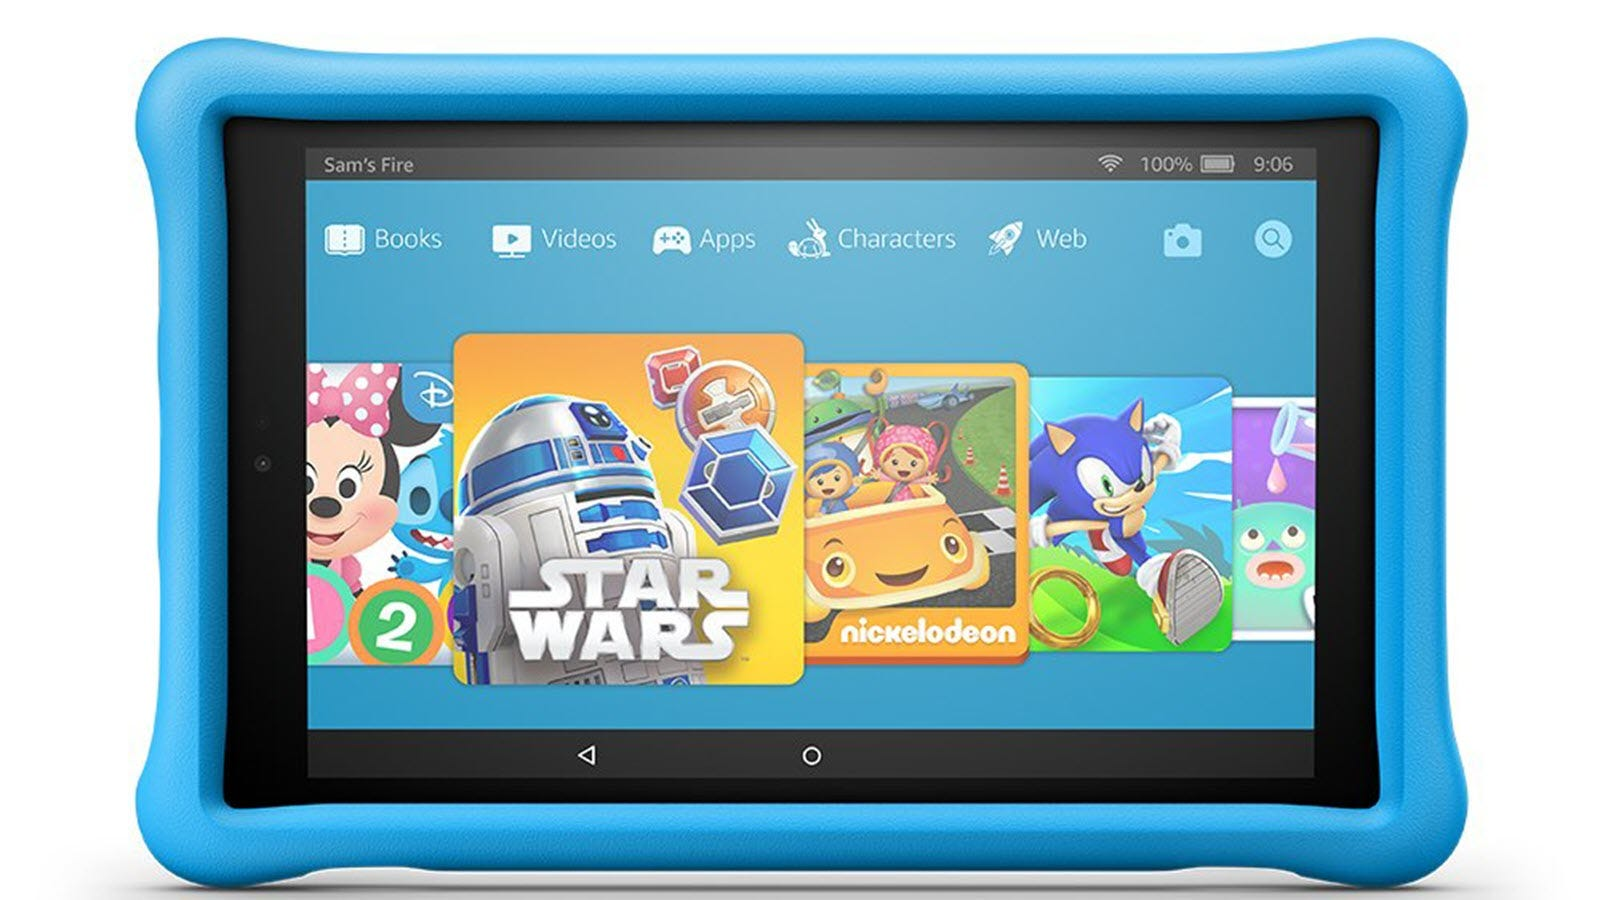 A Blue Fire Tablet 10 inch Kids Edition with Star Wars apps